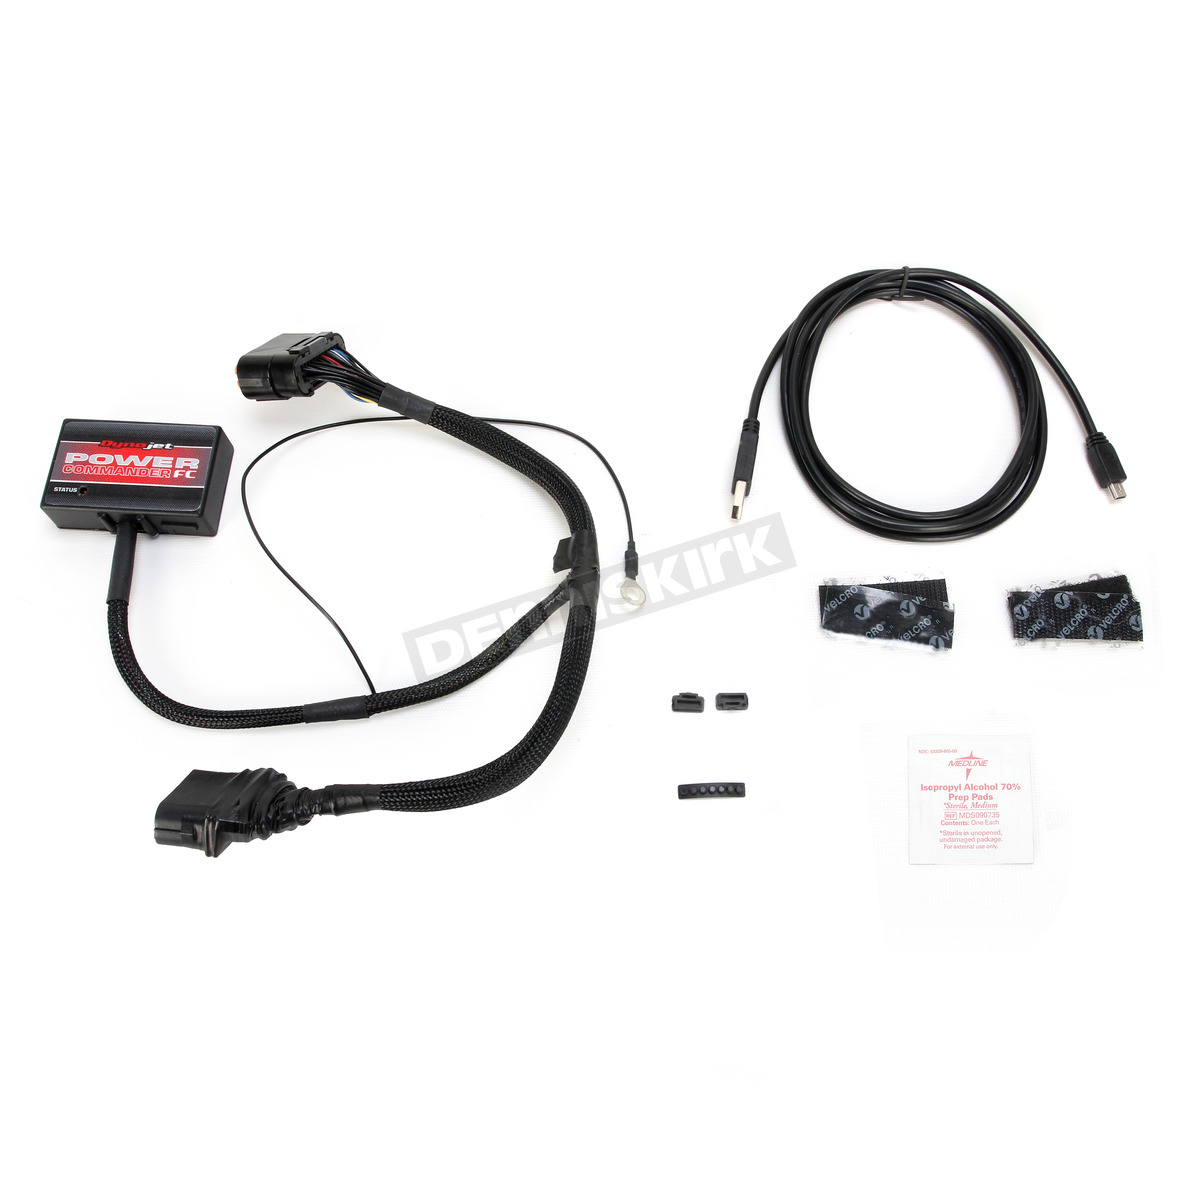 Dynojet Power Commander Fuel Controller Fc19007 Snowmobile Hd 4560 Wiring Harness Conversion